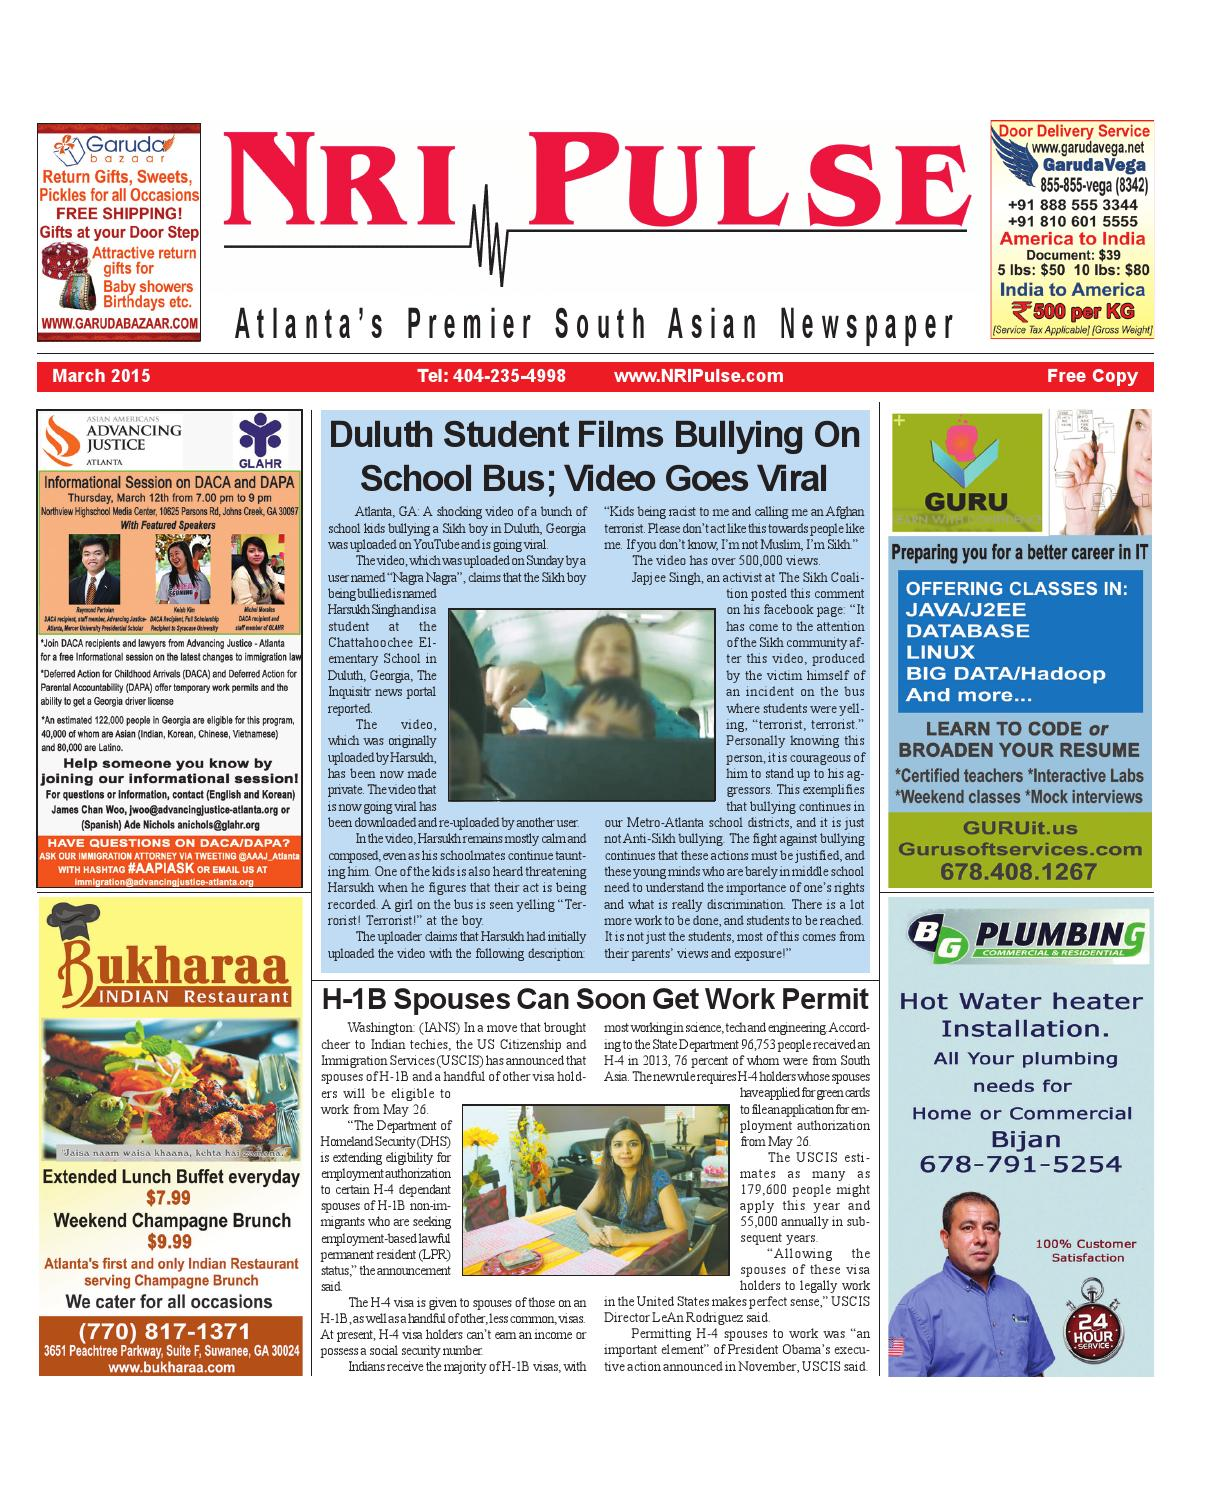 NRI Pulse March 2015 print issue by NRI Pulse - issuu